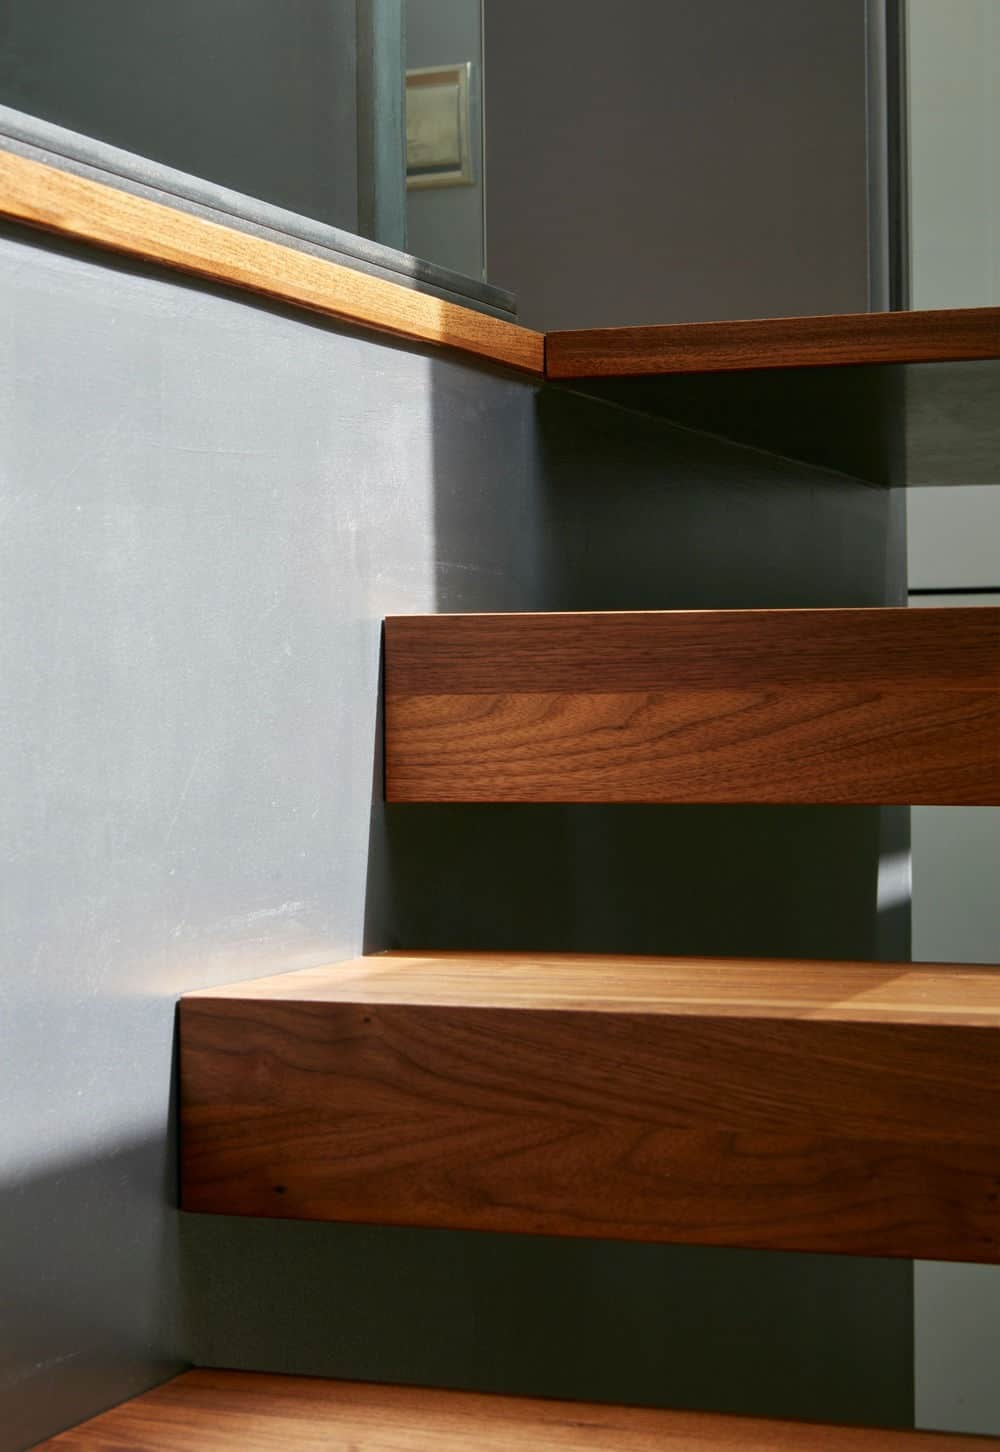 Close up look of the staircase's hardwood steps. Photo Credit: James Brittain